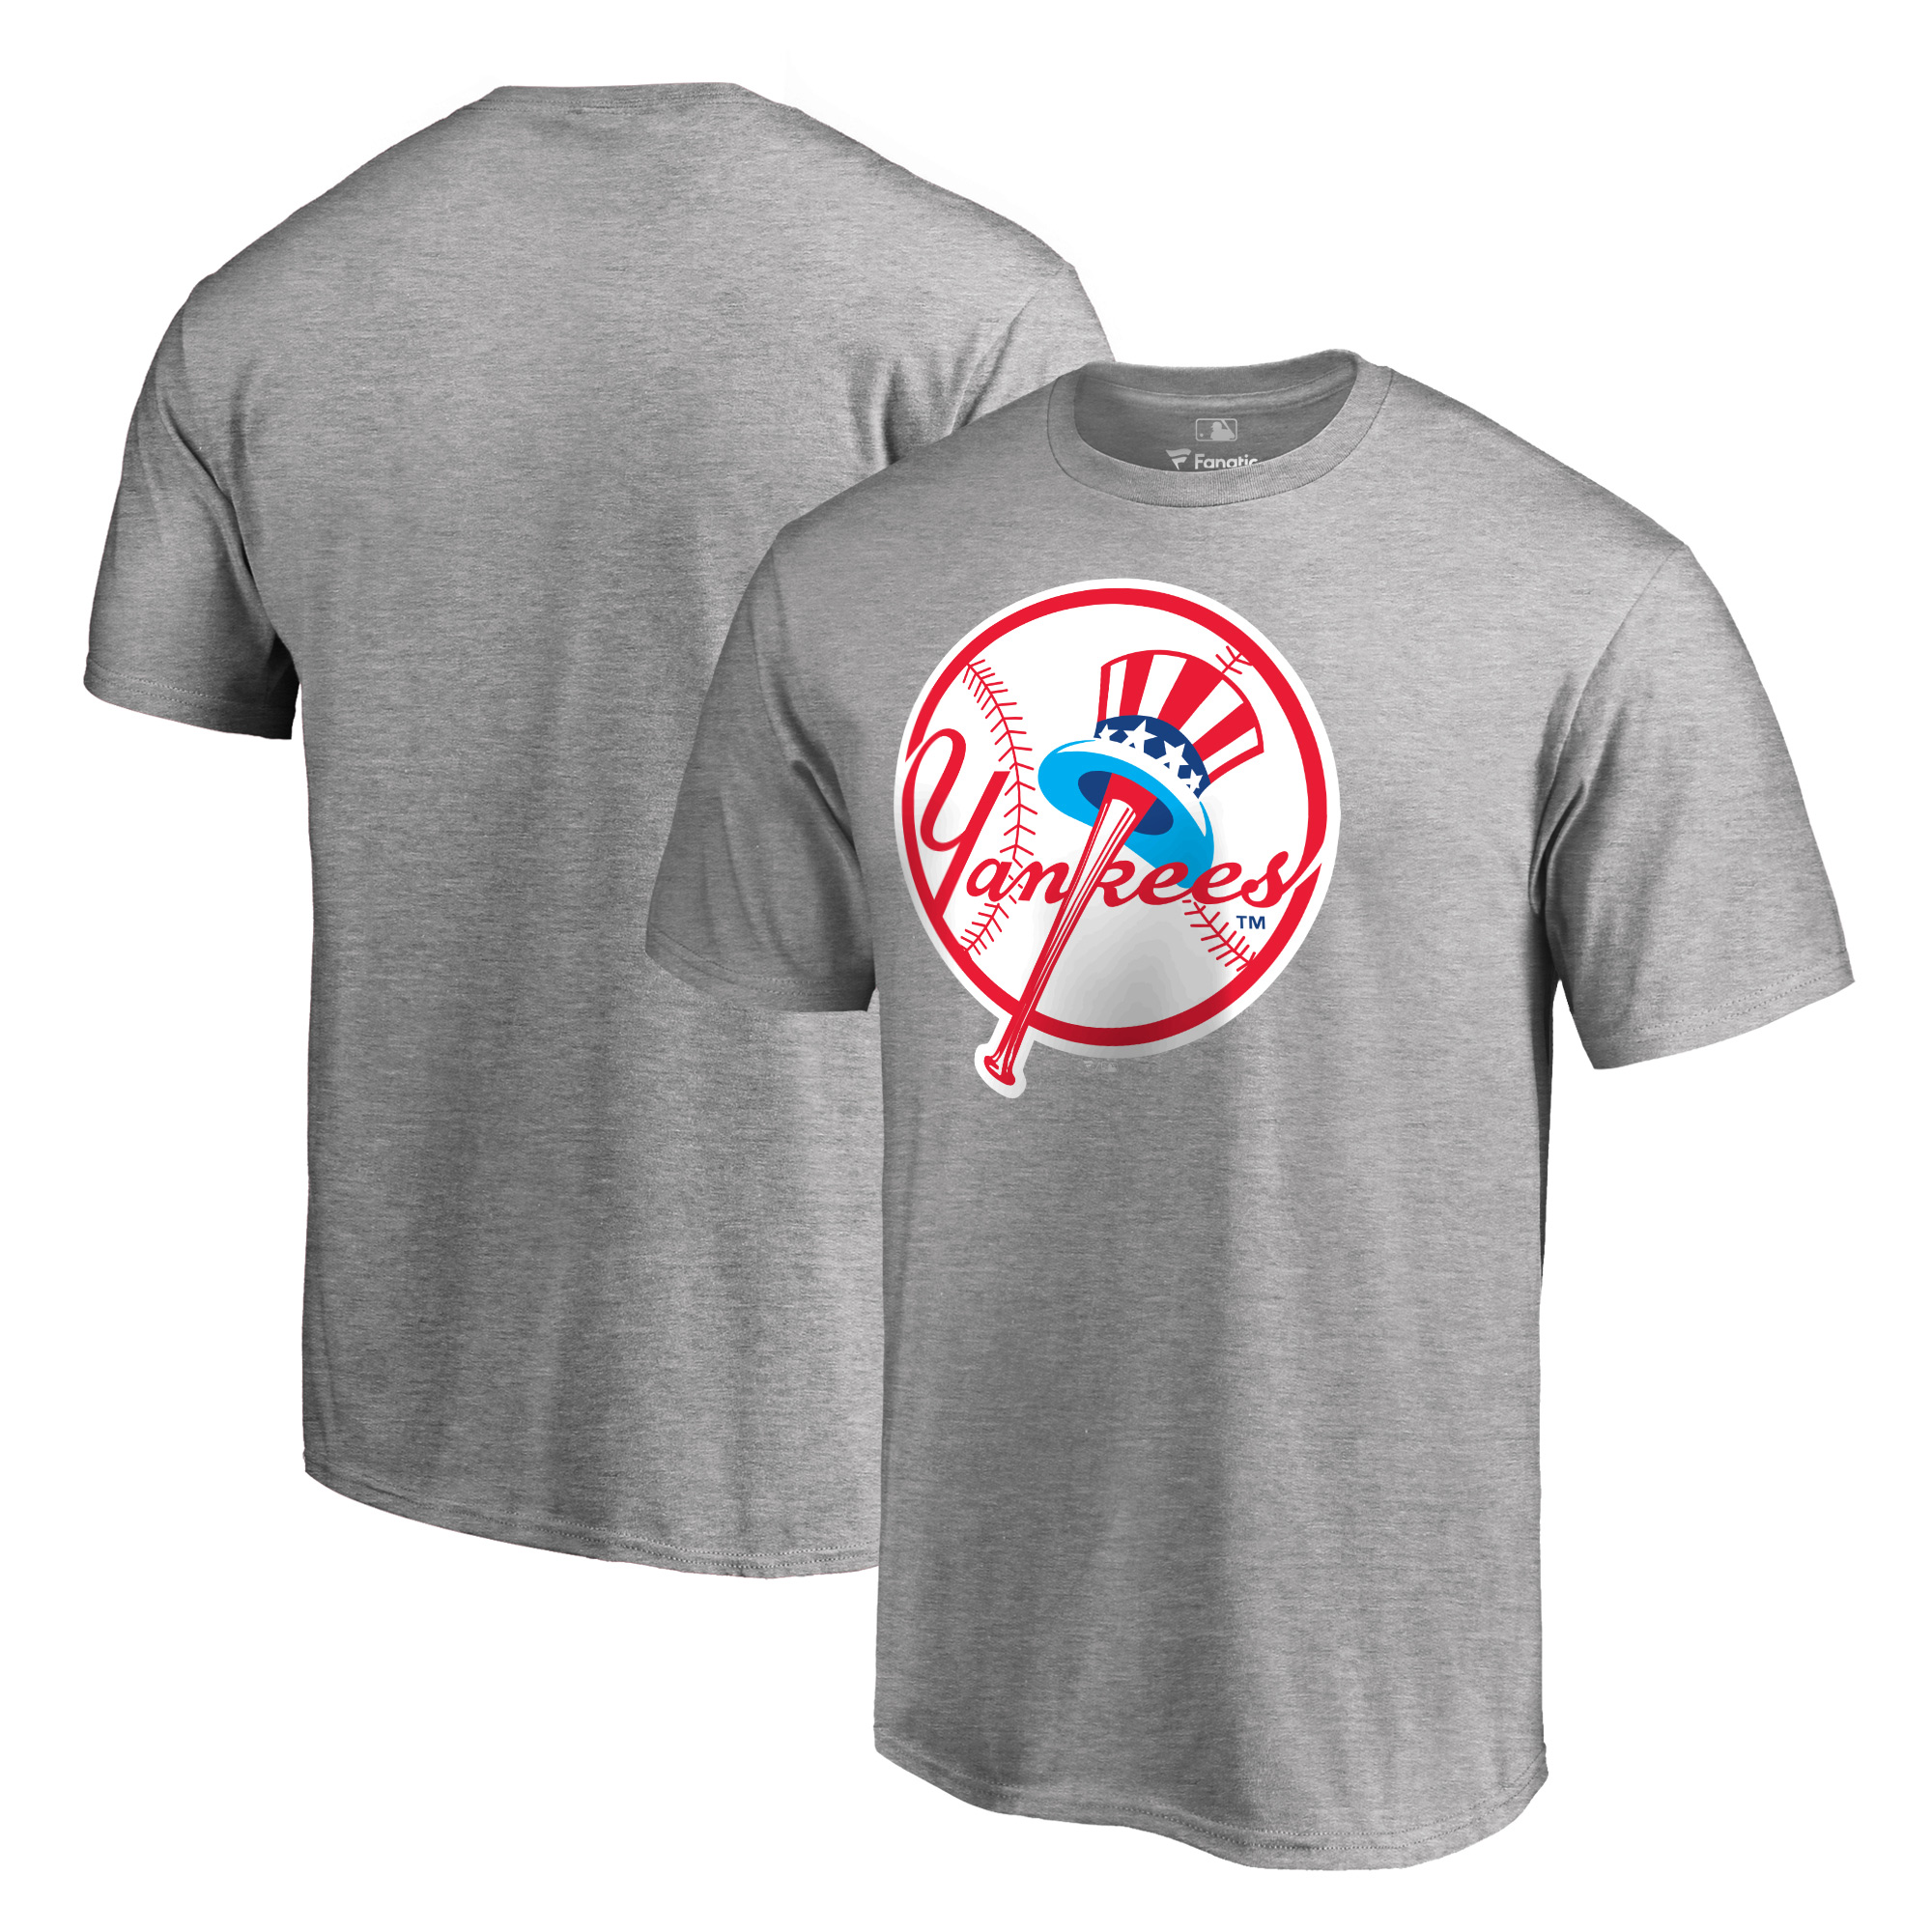 New York Yankees Fanatics Branded Cooperstown Collection Forbes T-Shirt - Heathered Gray